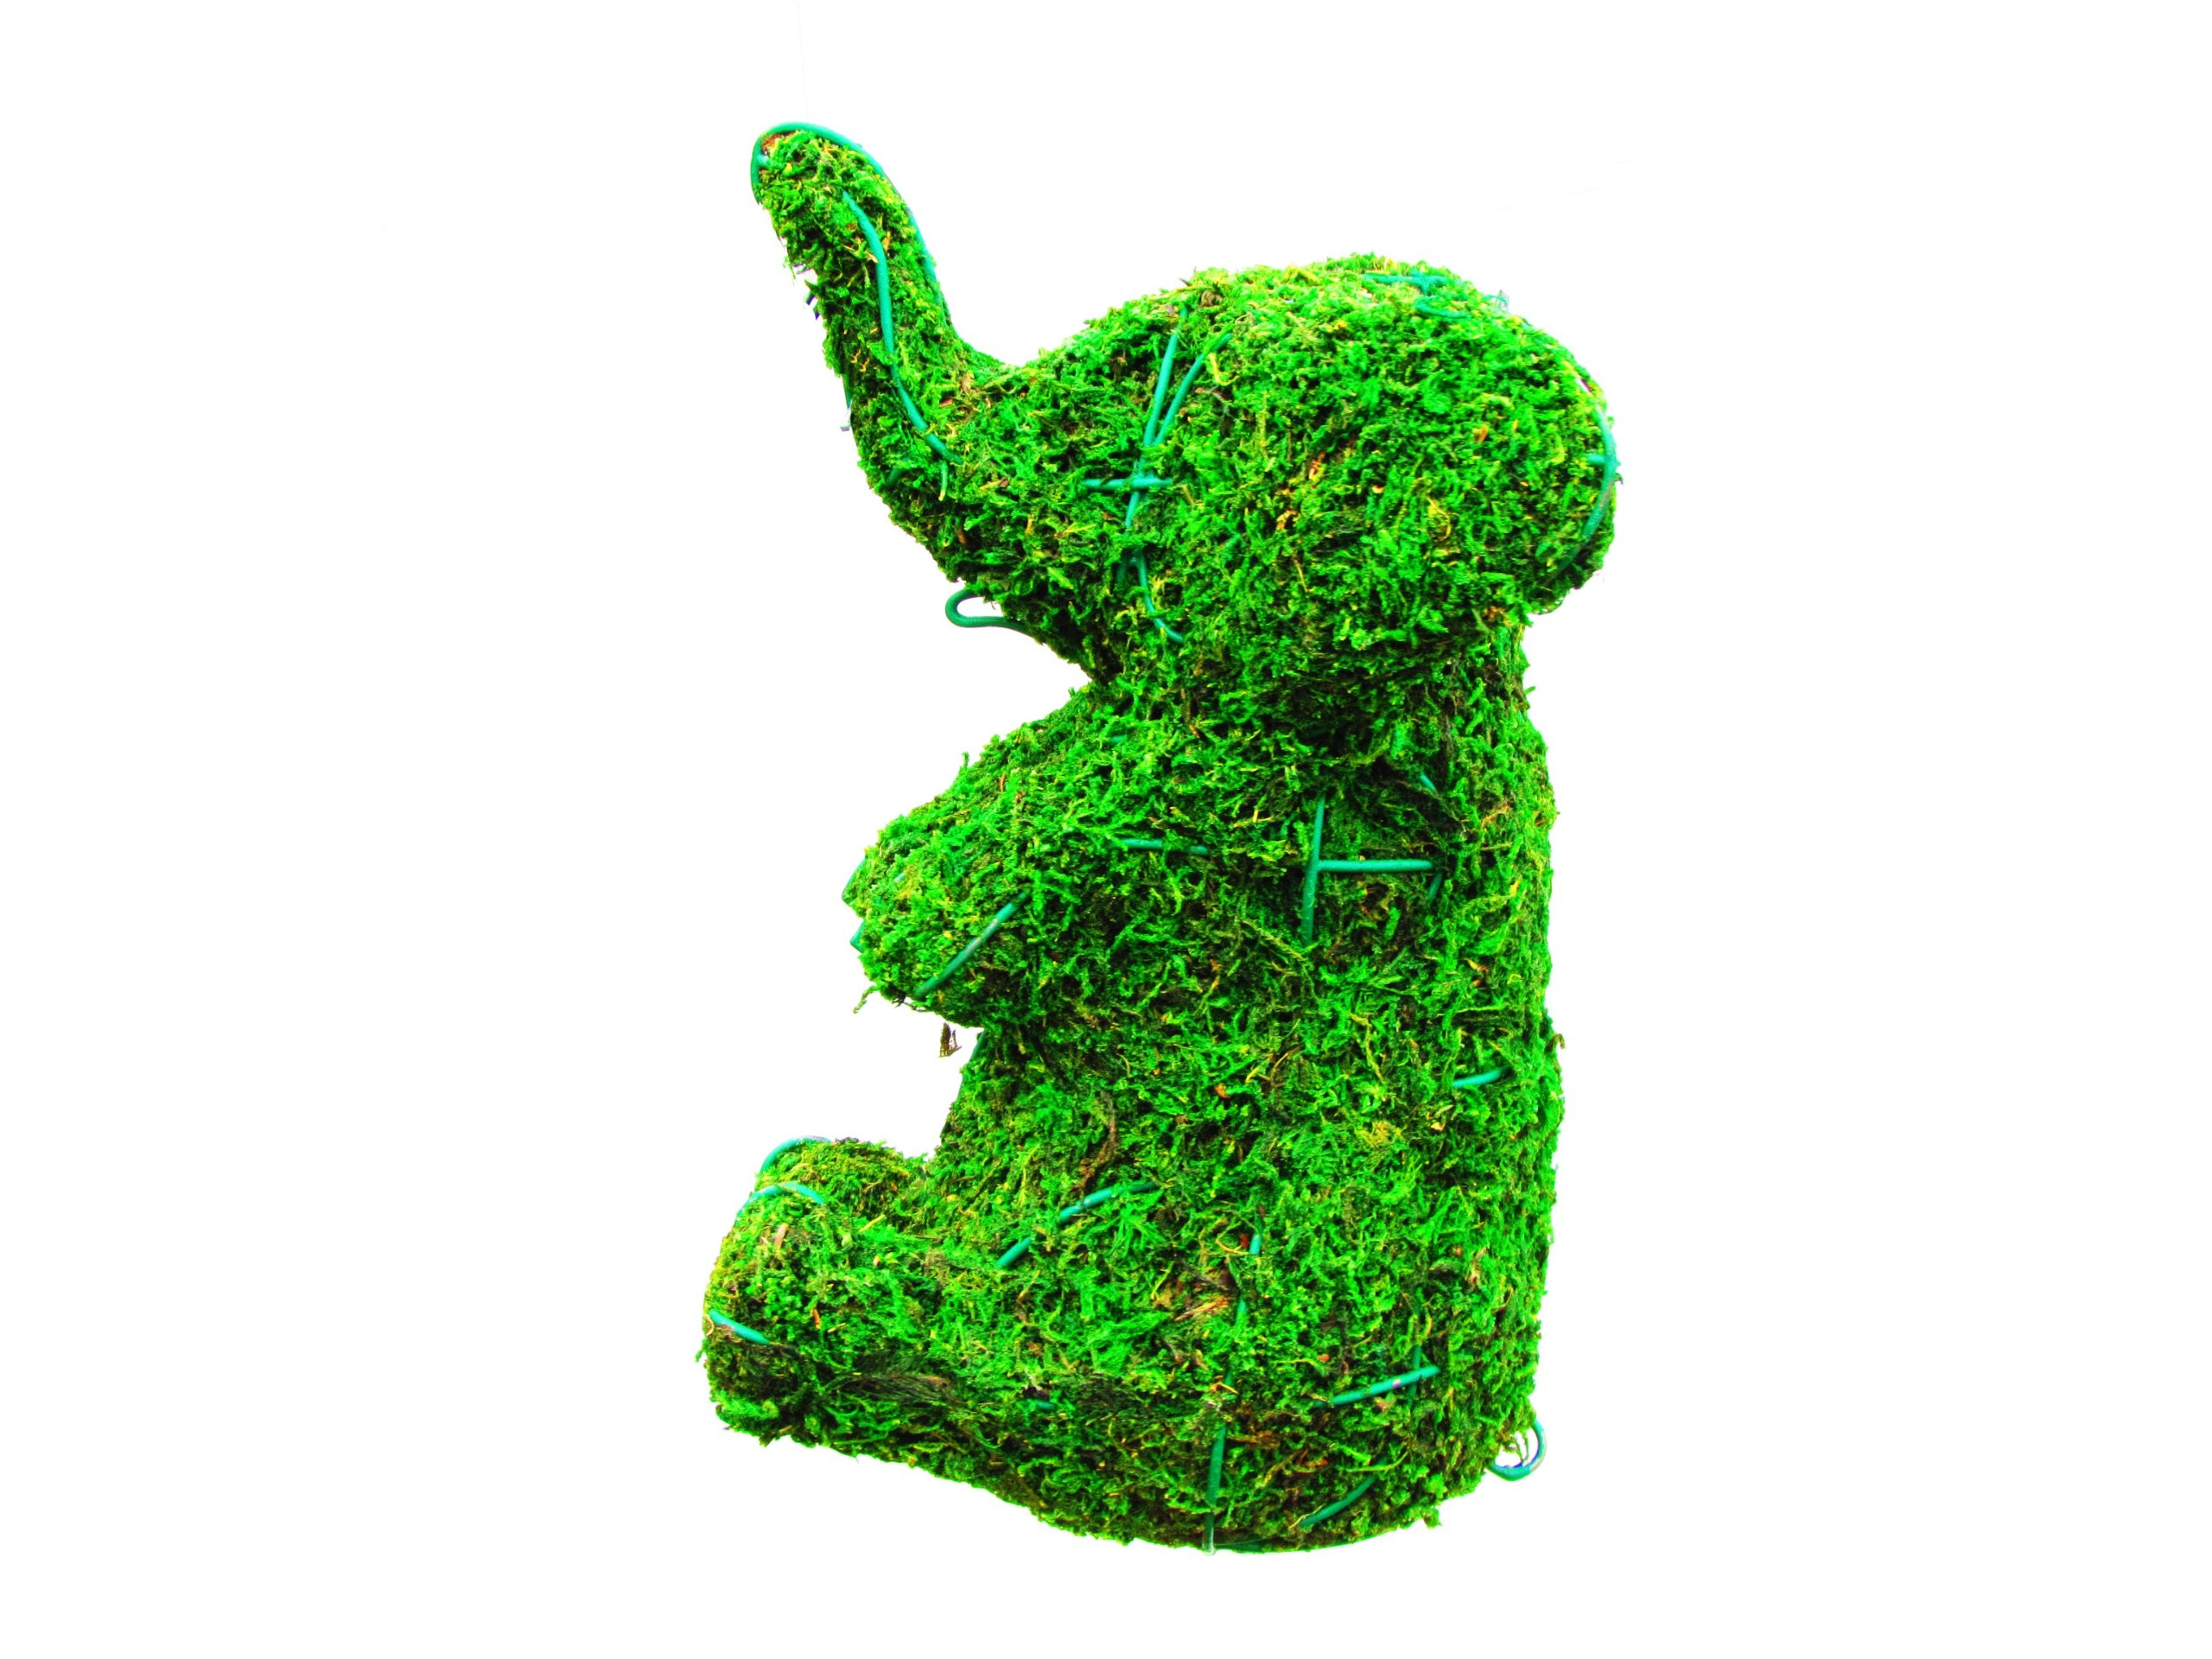 Elephant Sitting 16 inches high x 13 inches long x 9 inches wide w/ Moss Topiary Frame , Handmade Animal Decoration by S.K 703 Topiary Inc.